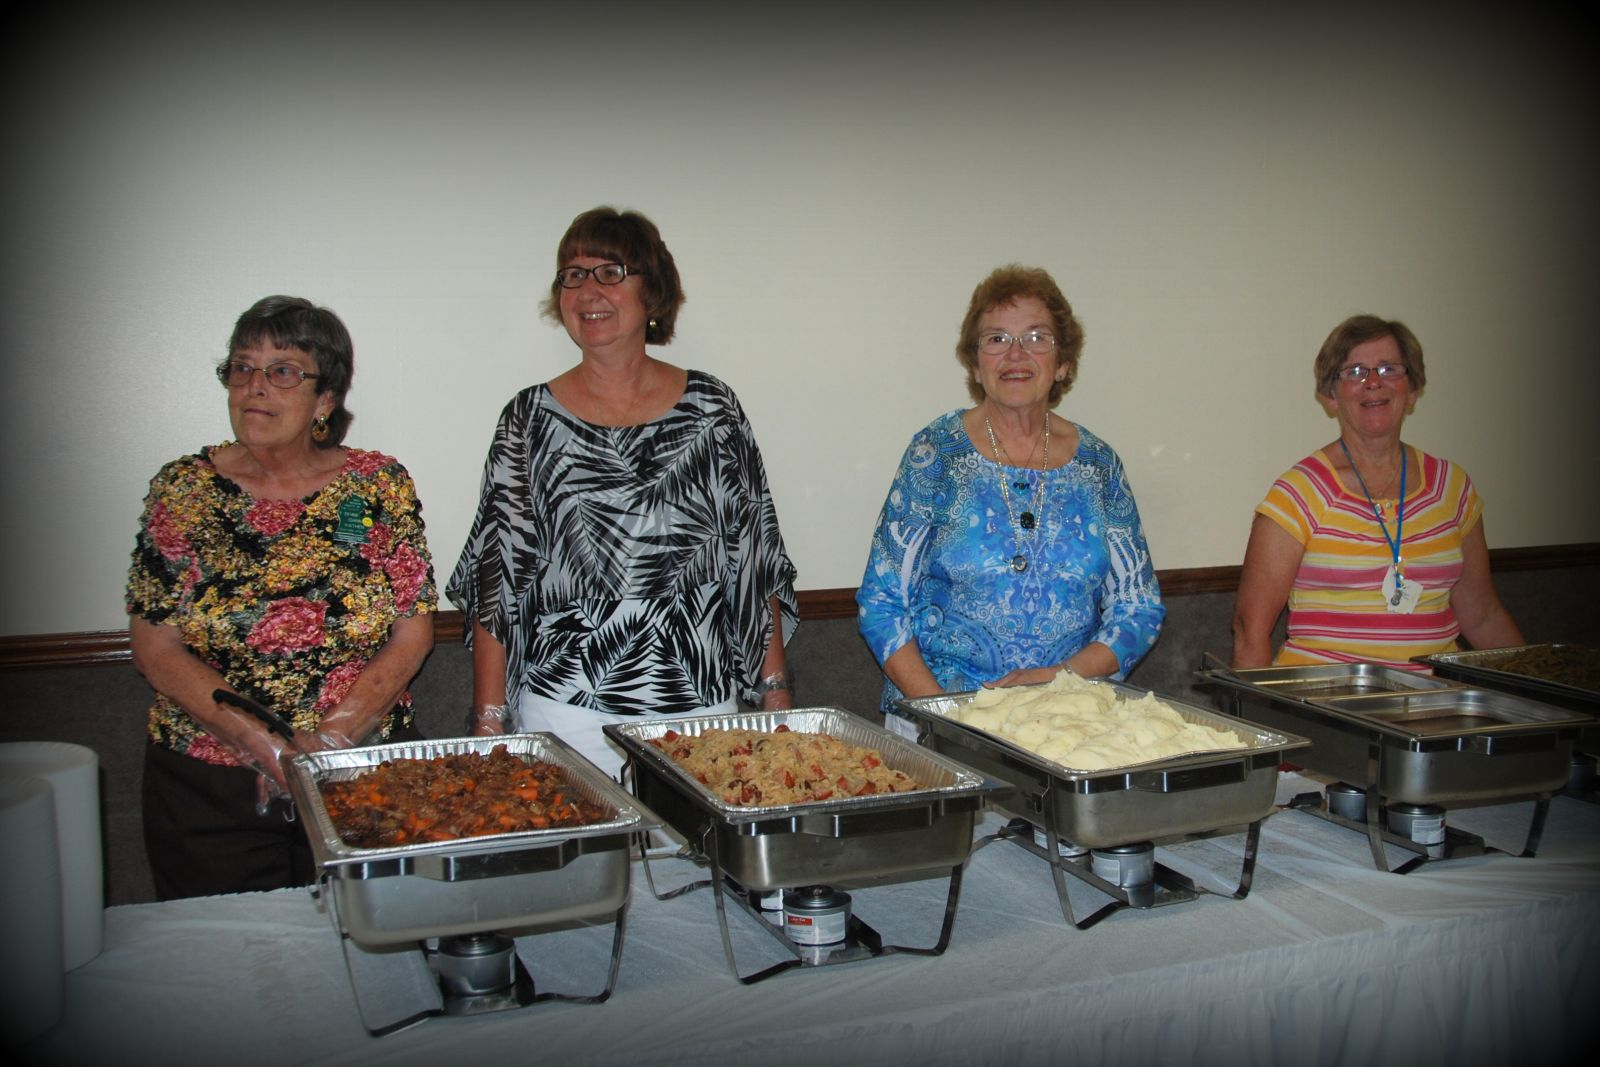 Members of both clubs serving the Saturday night dinner